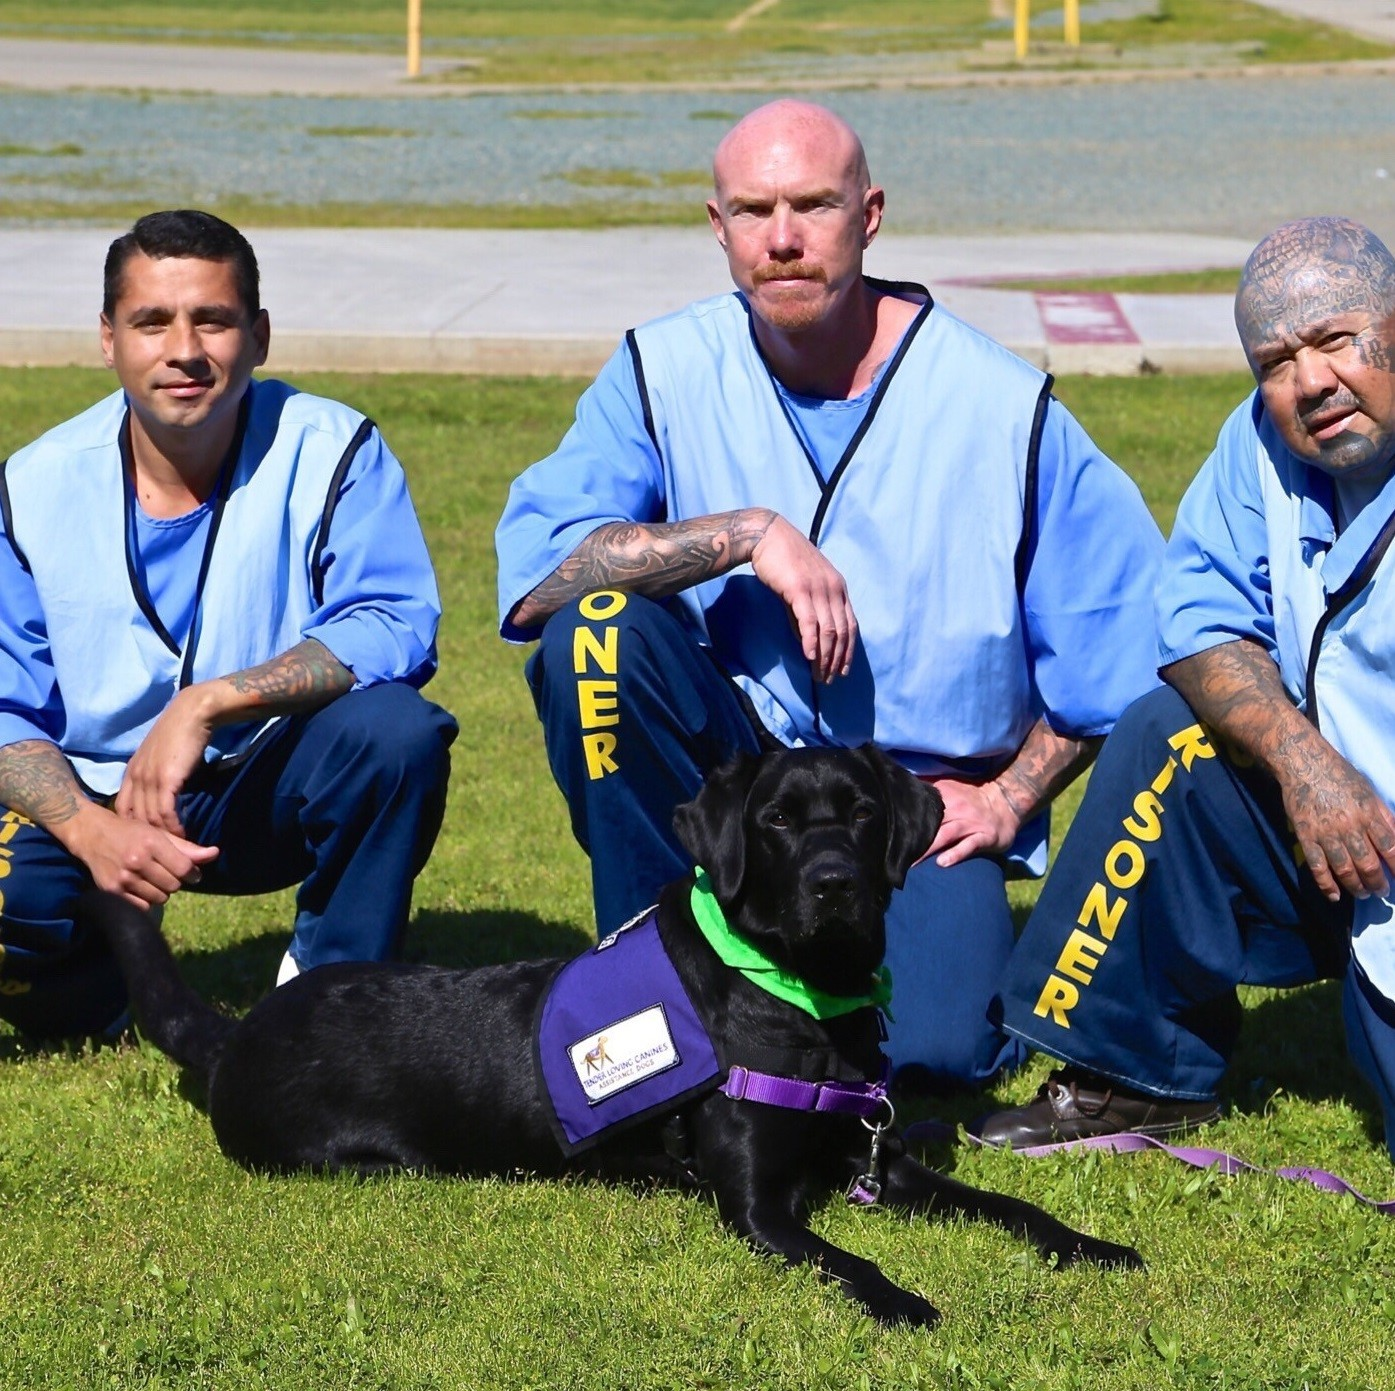 San Diego organization works with inmates to train service dogs